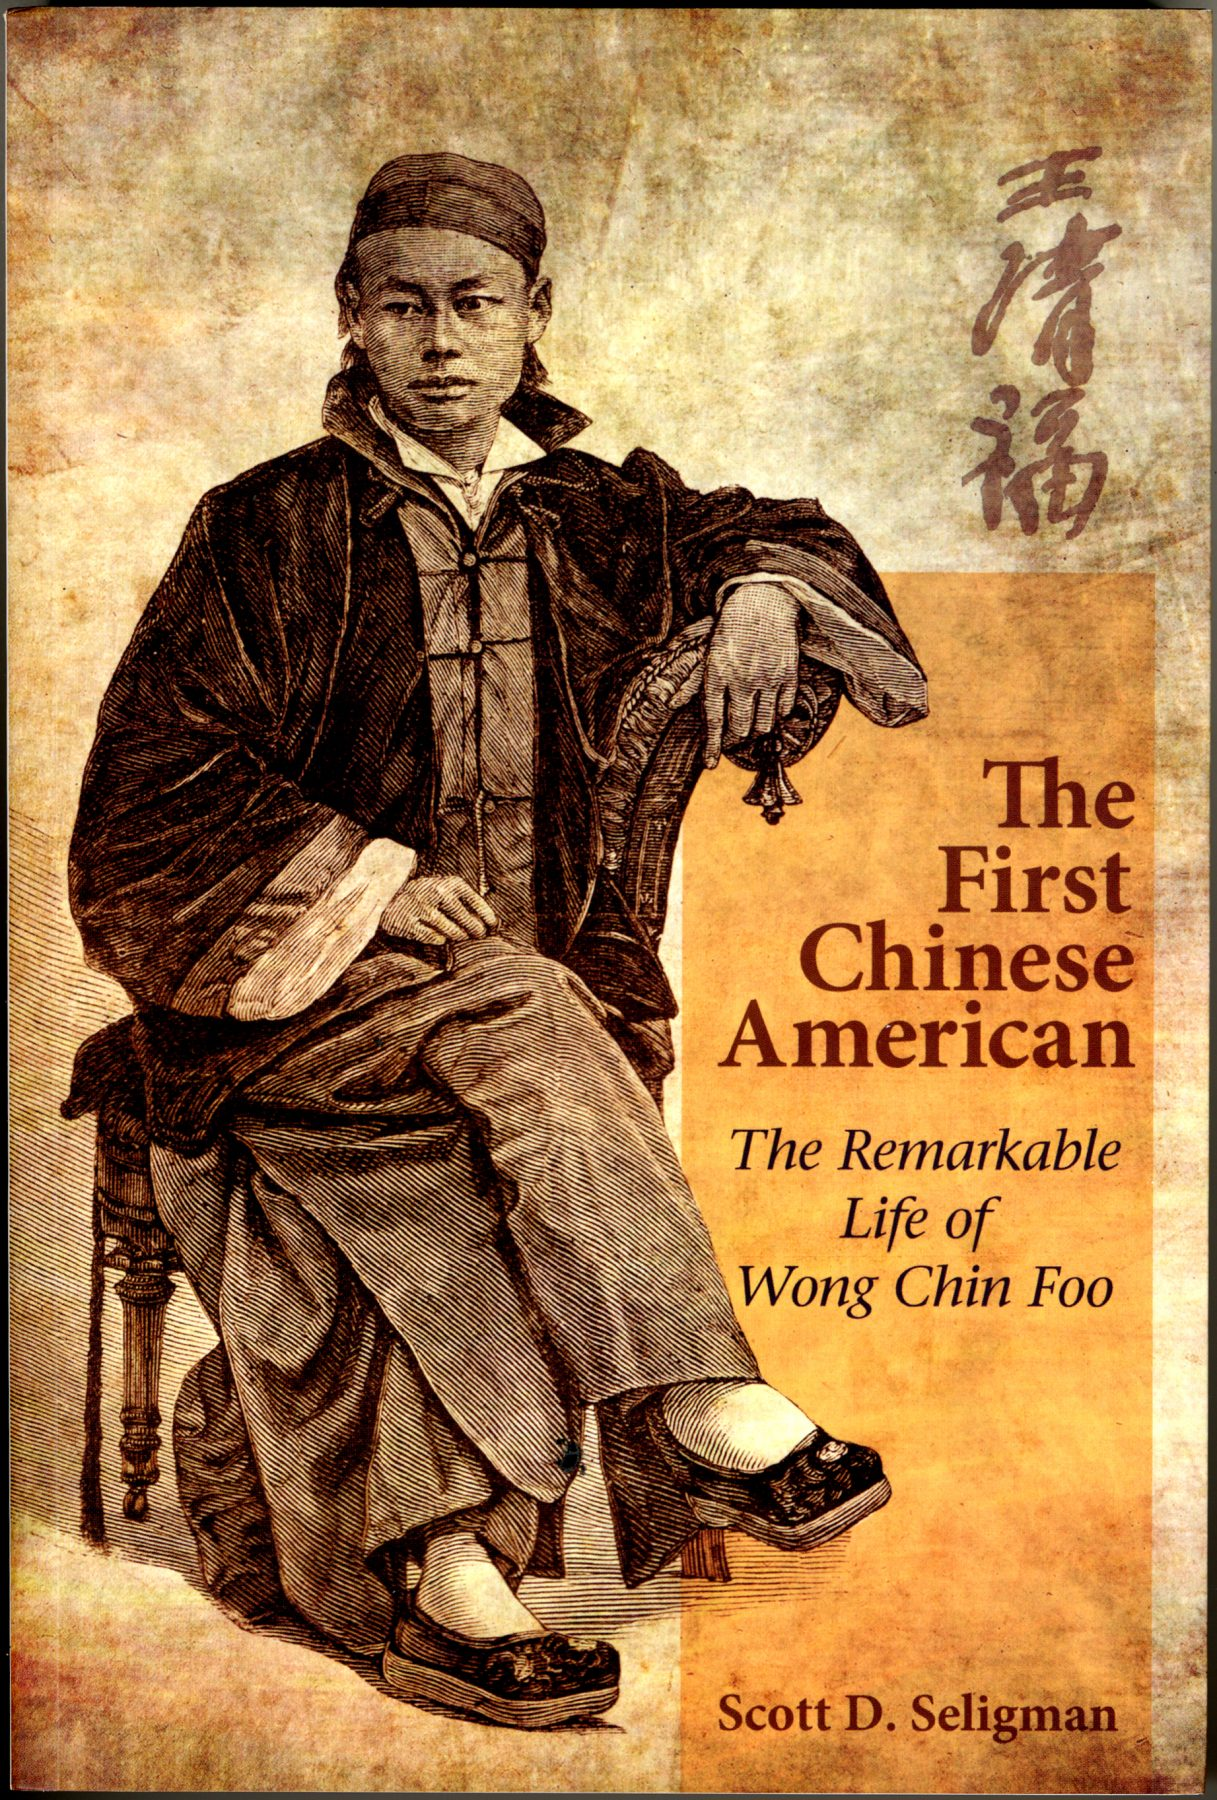 03 July 2019 Posted. Wong Chin Foo biography by Scott D. Seligman, Museum of Chinese in America (MOCA) Collection. Scott D. Seligman的《王清福》传记,美国华人博物馆(MOCA)馆藏